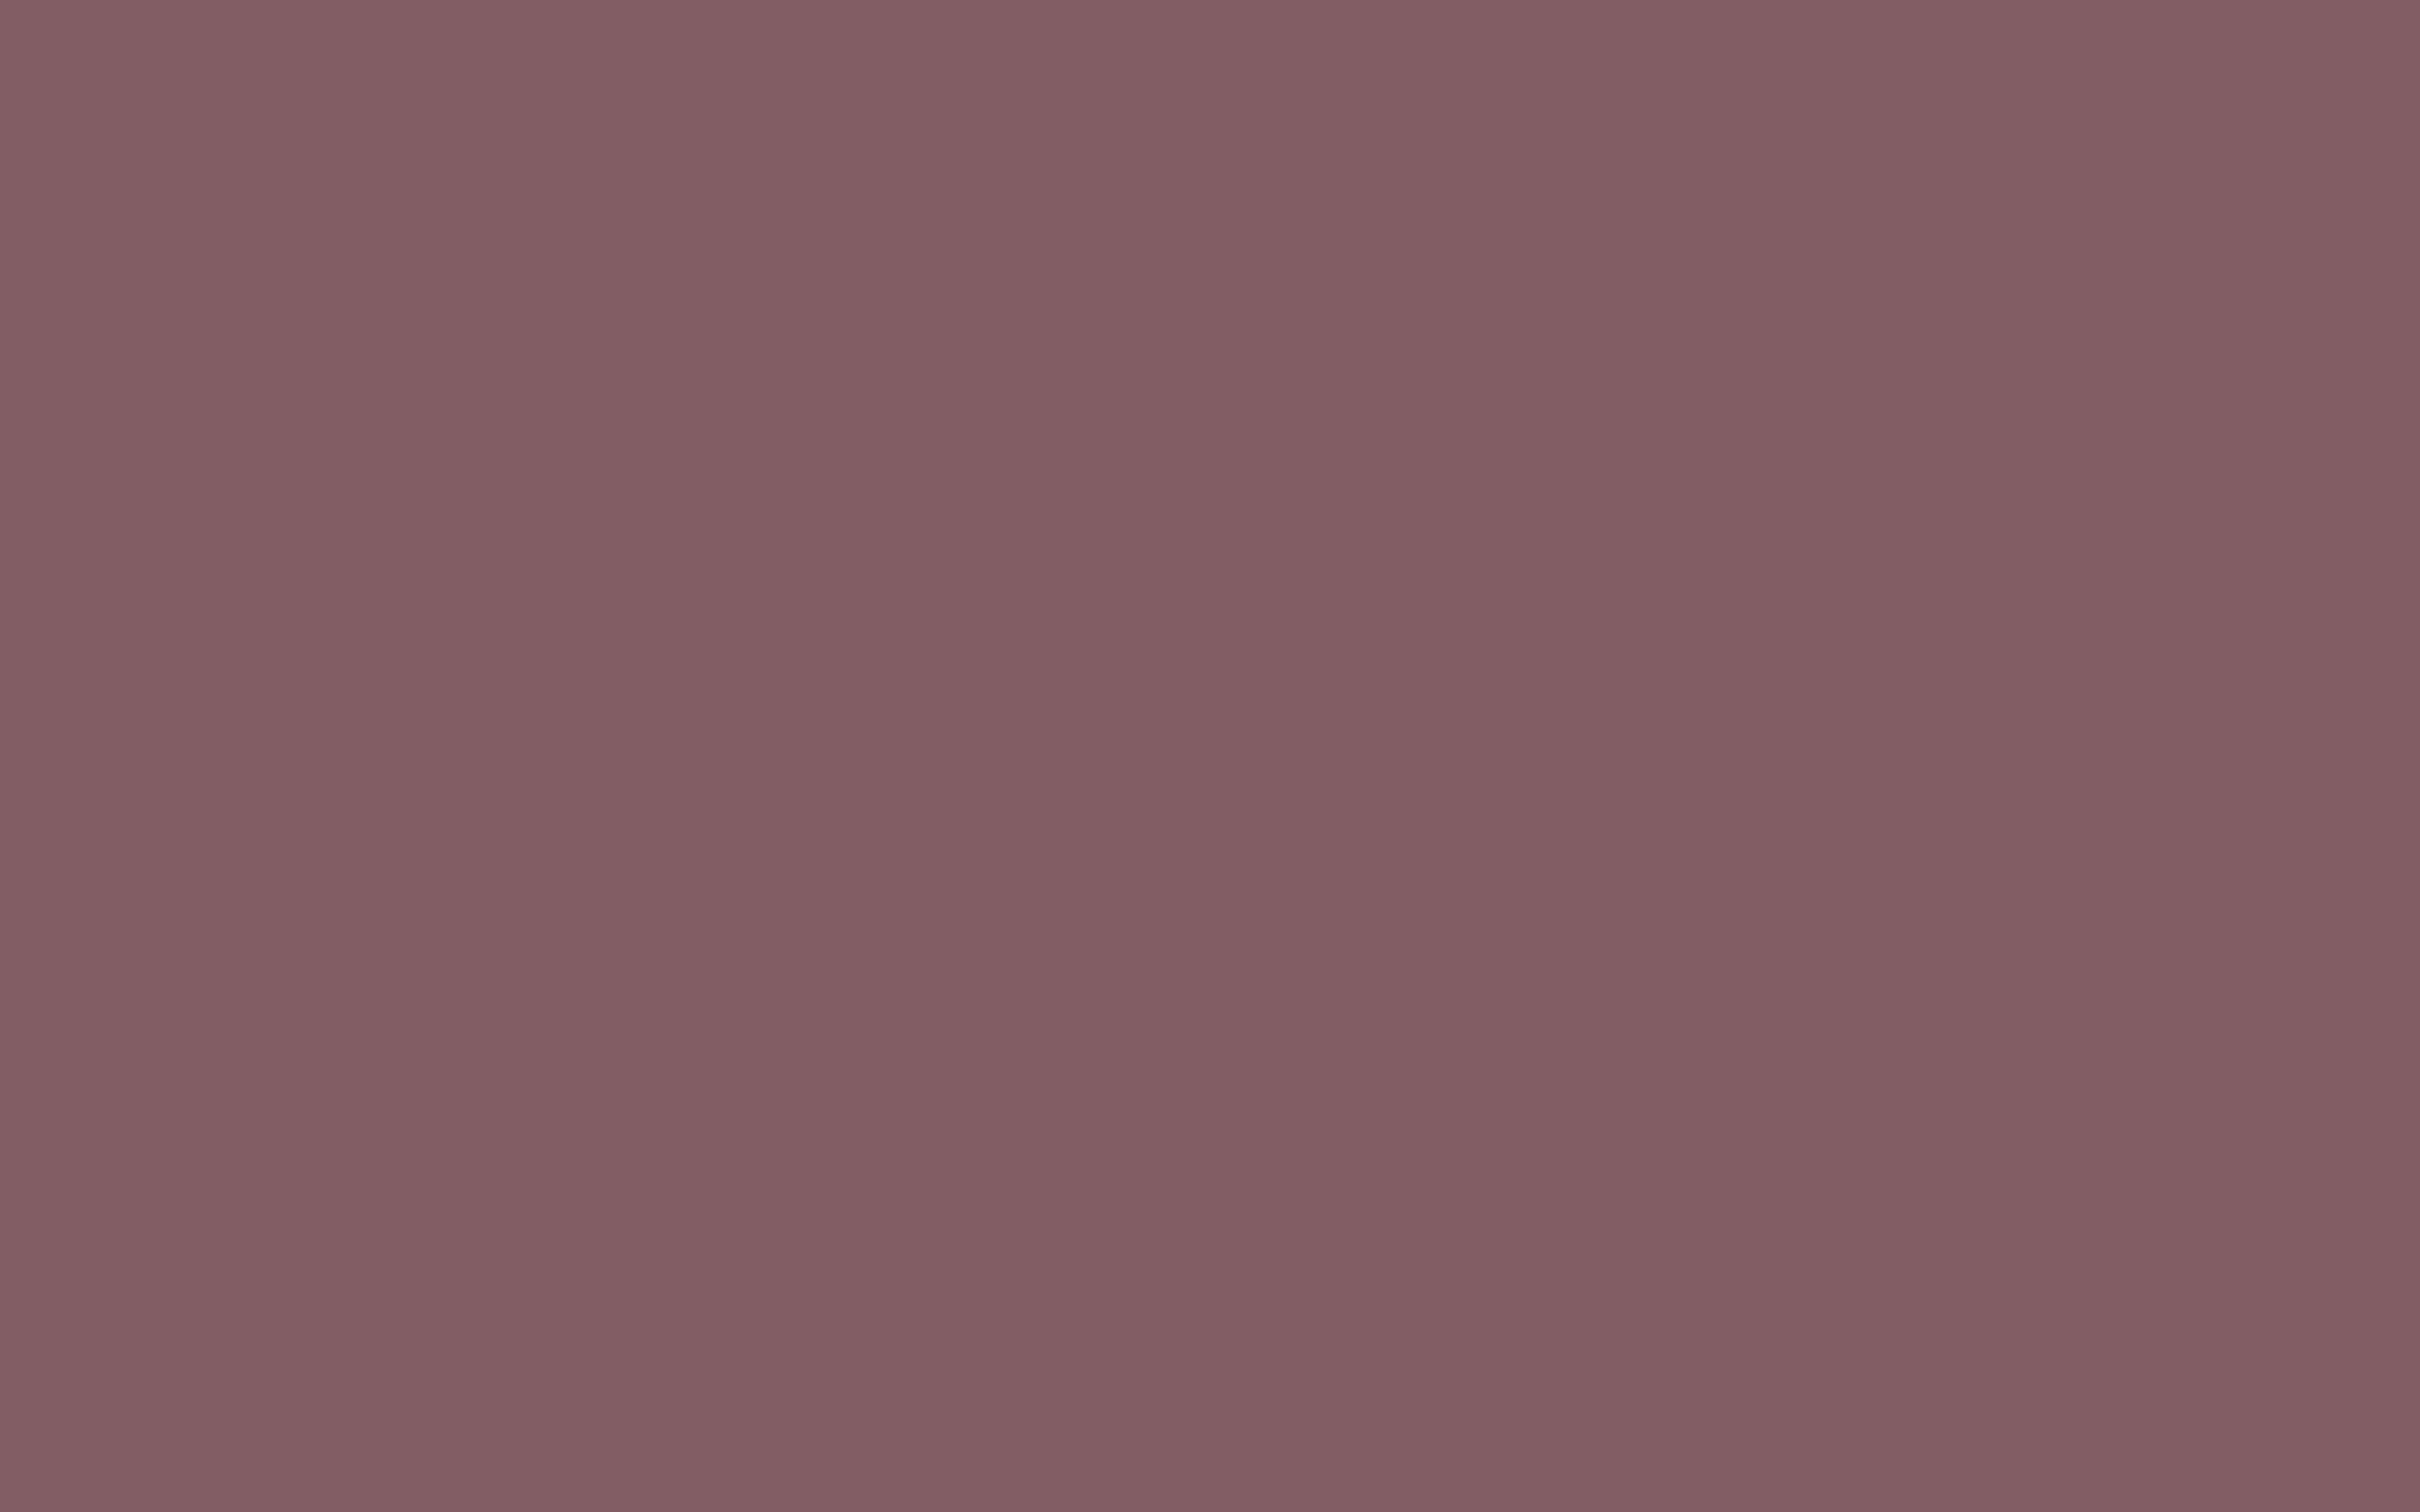 2560x1600 Deep Taupe Solid Color Background